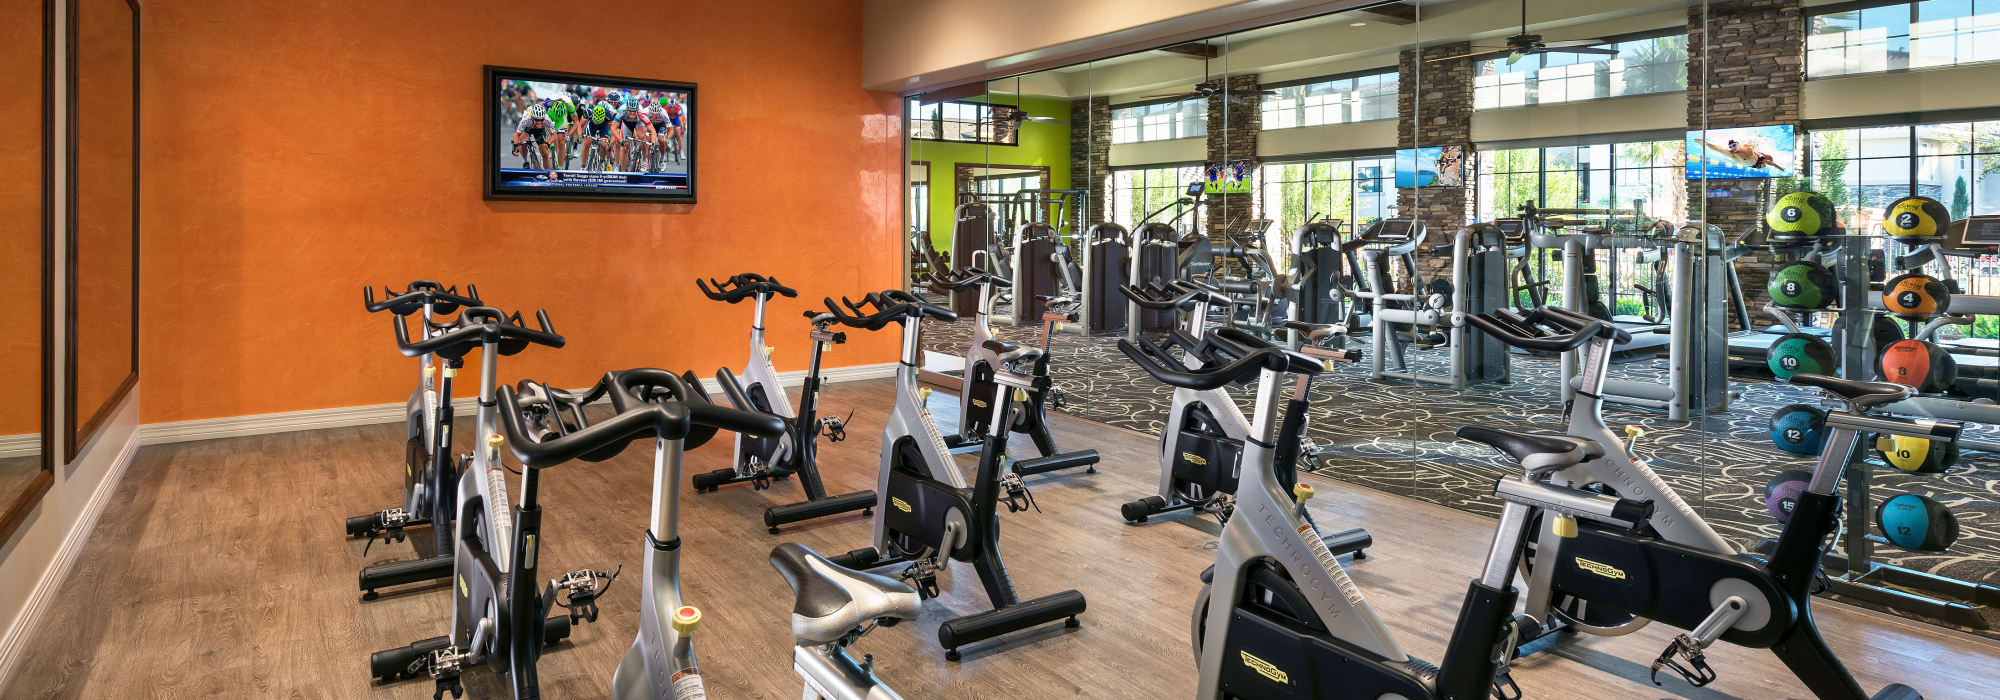 Fitness center at San Travesia in Scottsdale, Arizona